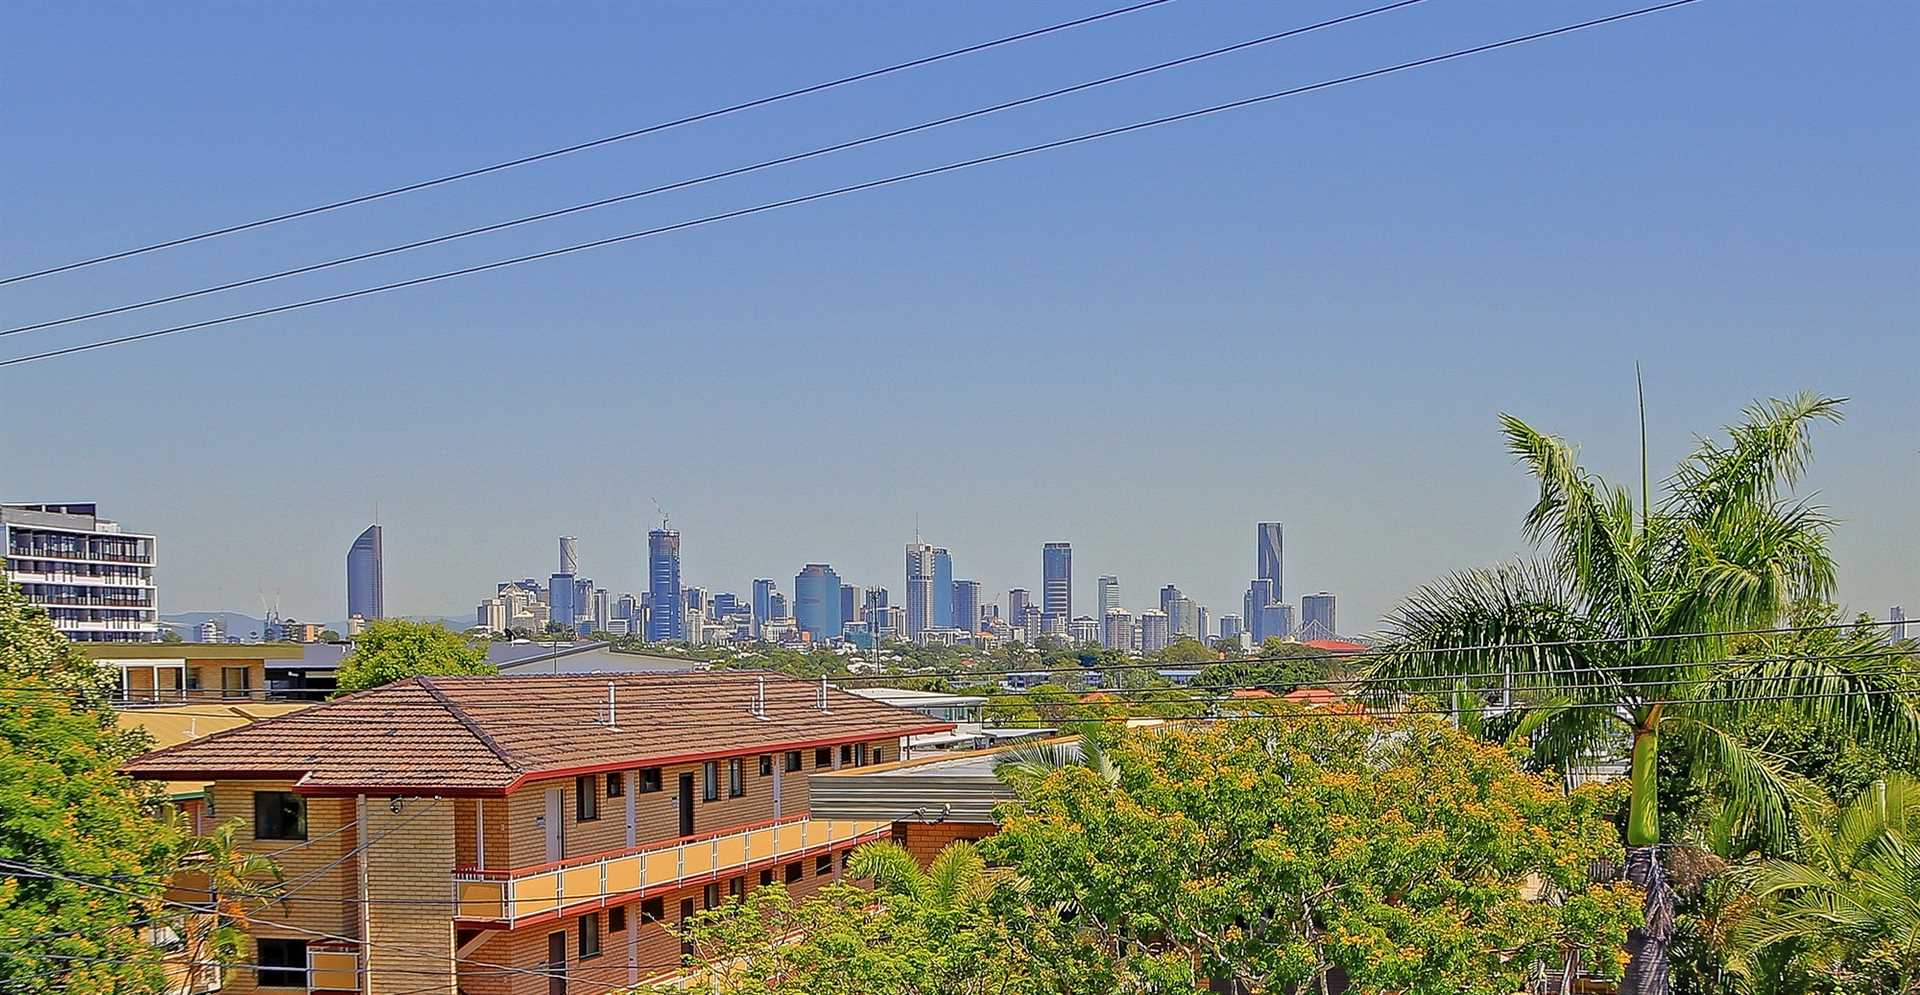 Cracking Views! In the Heart of It all! Move Straight In!